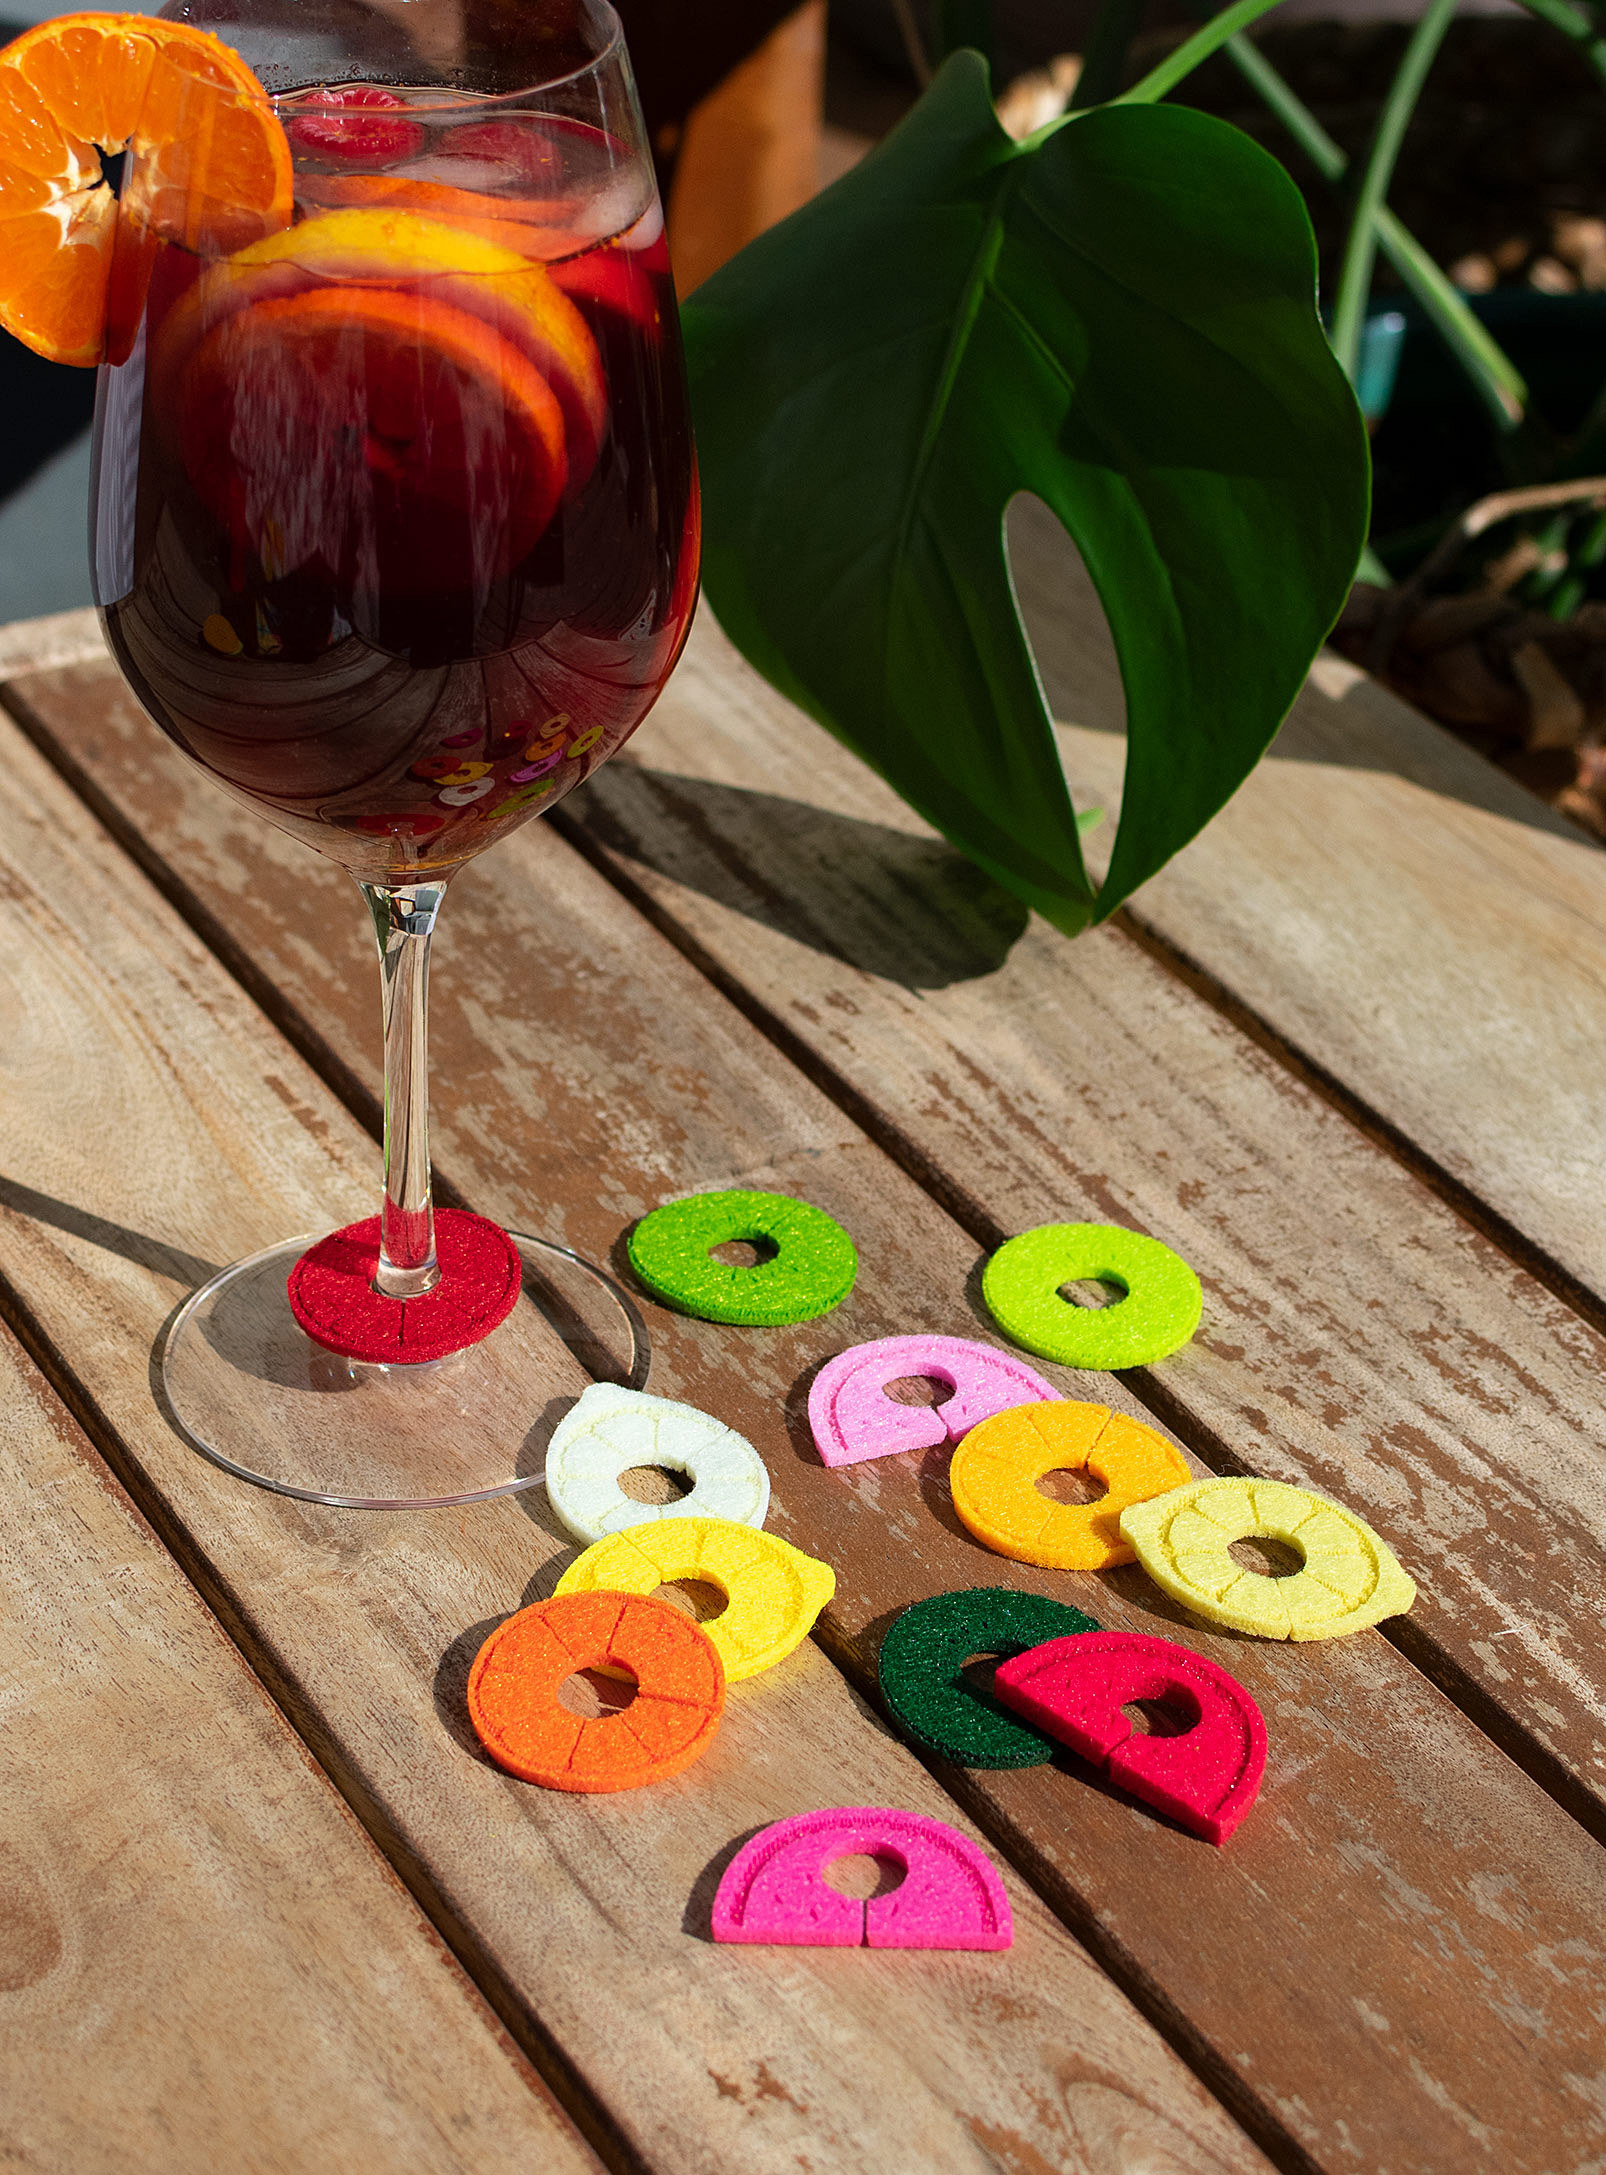 A pile of felt drink markers next to a glass of wine